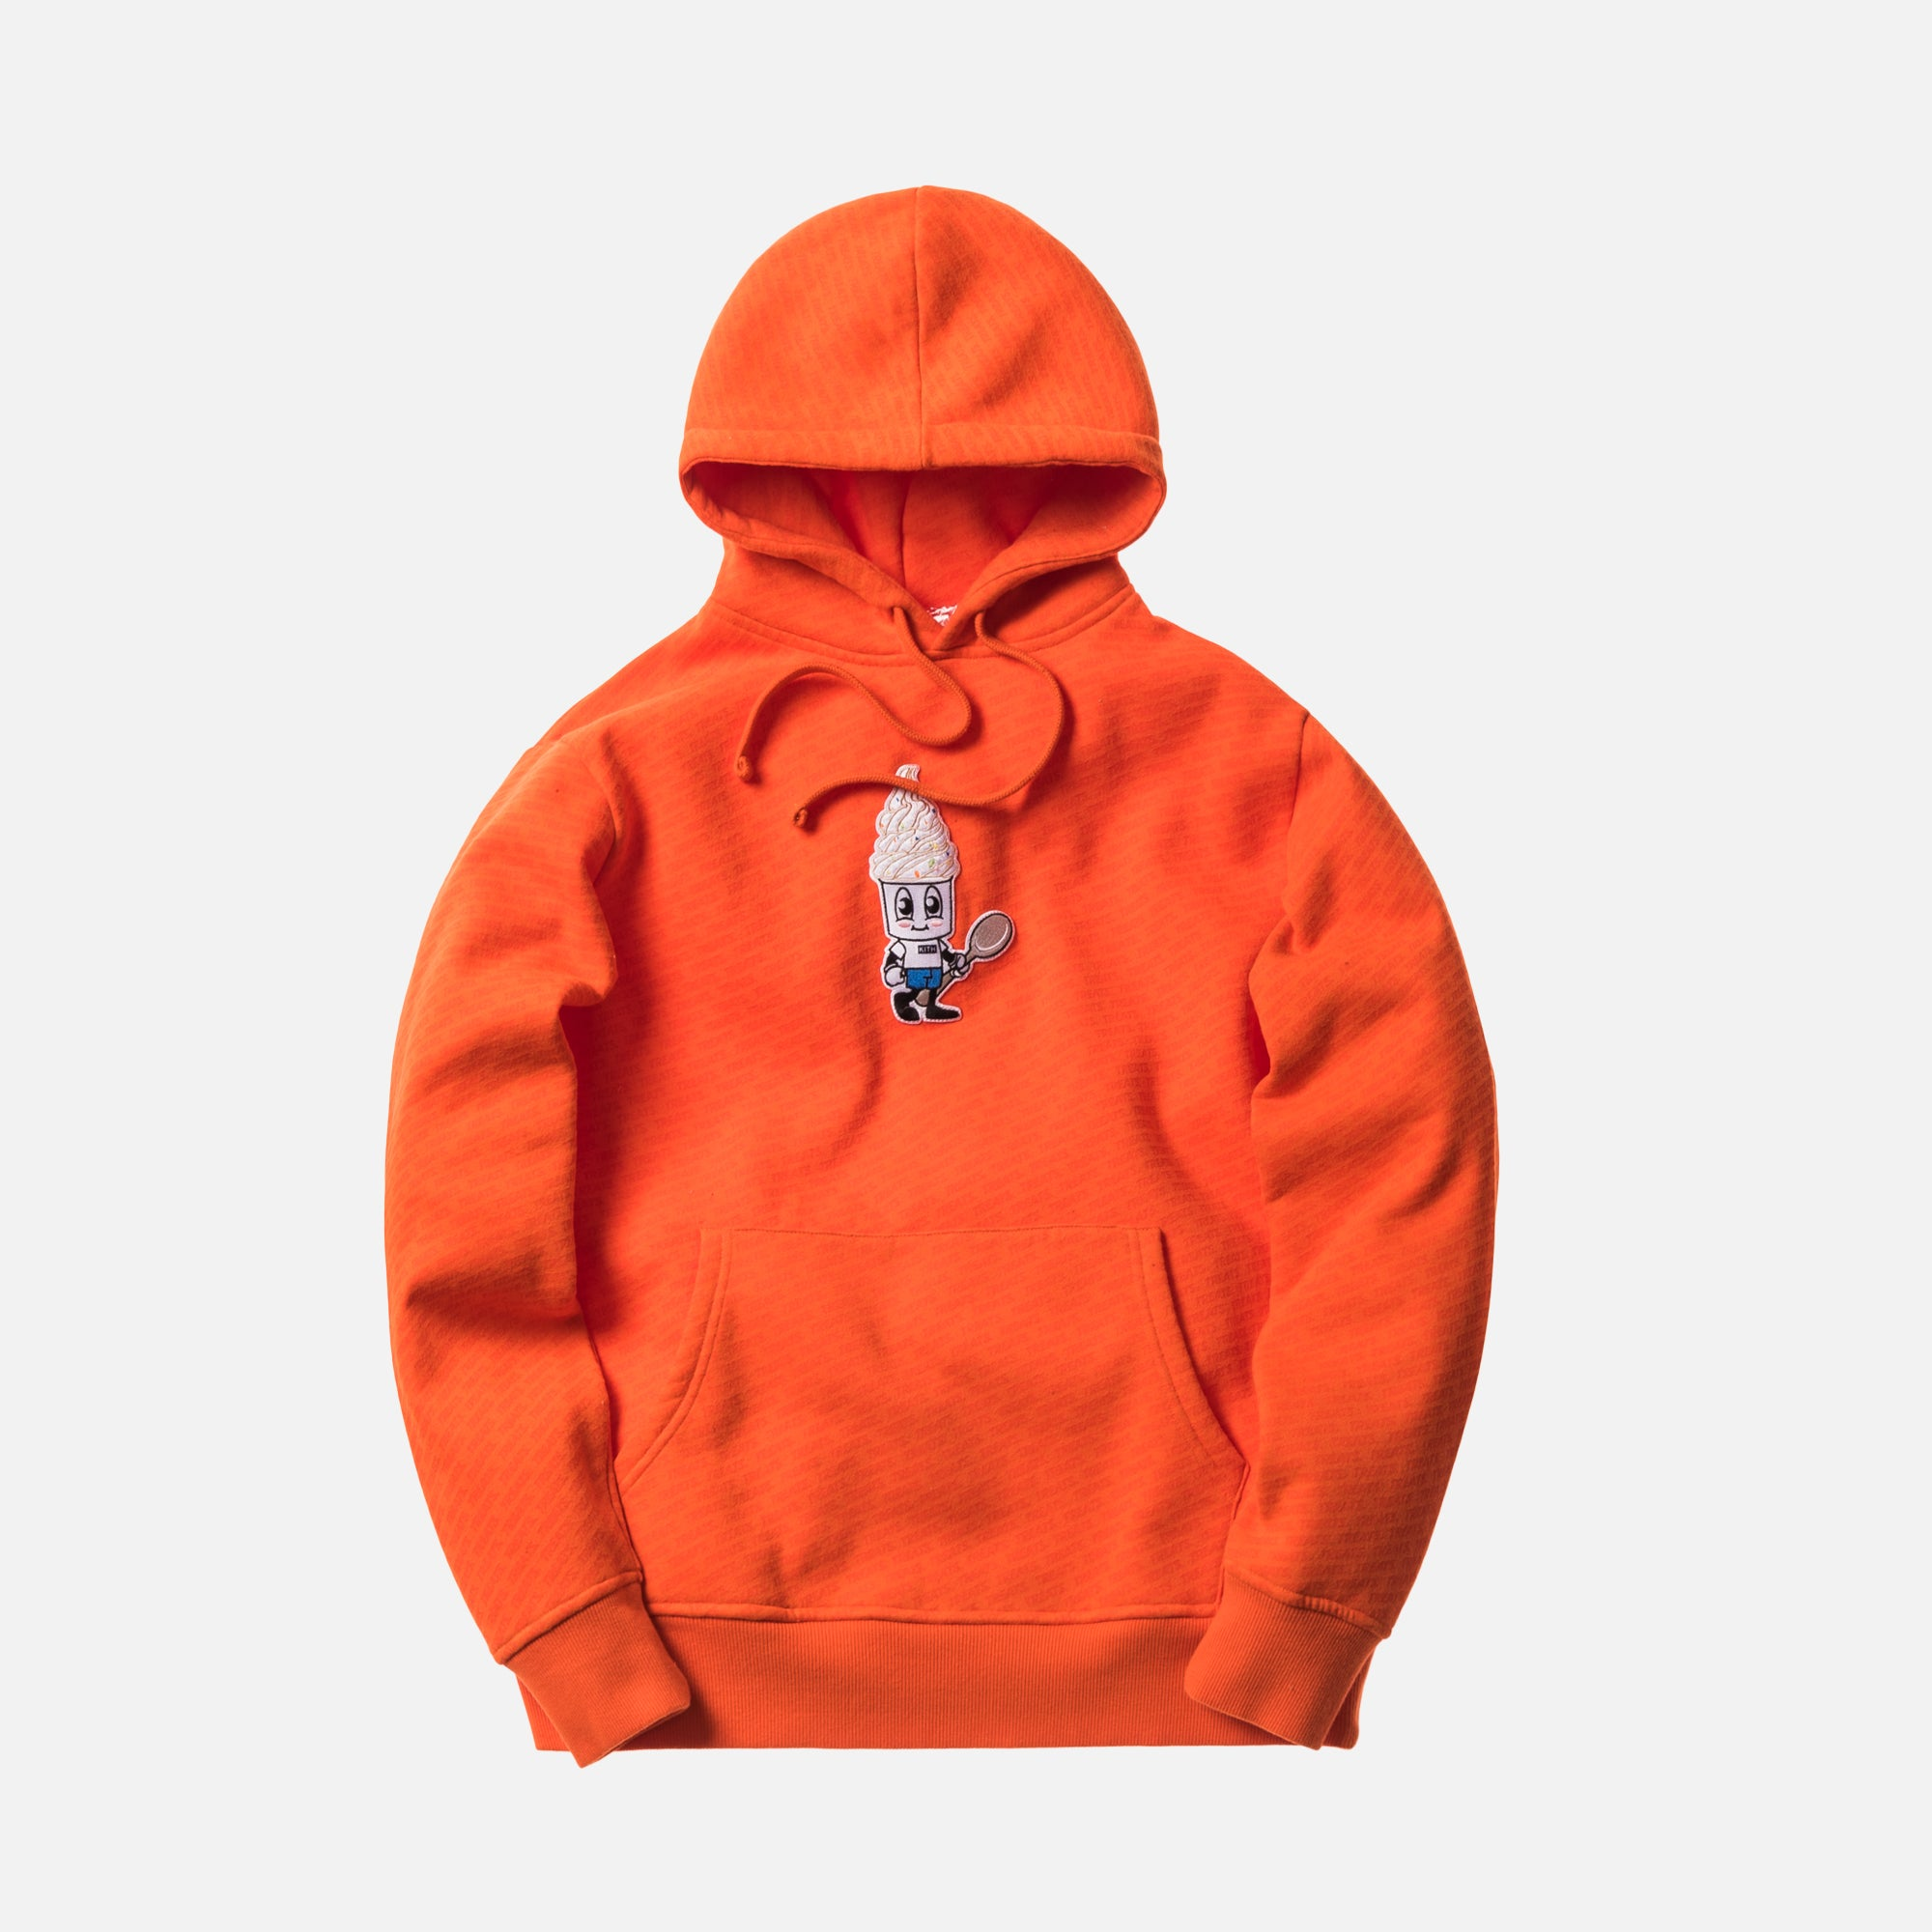 Kith Treats Cereal Boy Hoodie - Orange